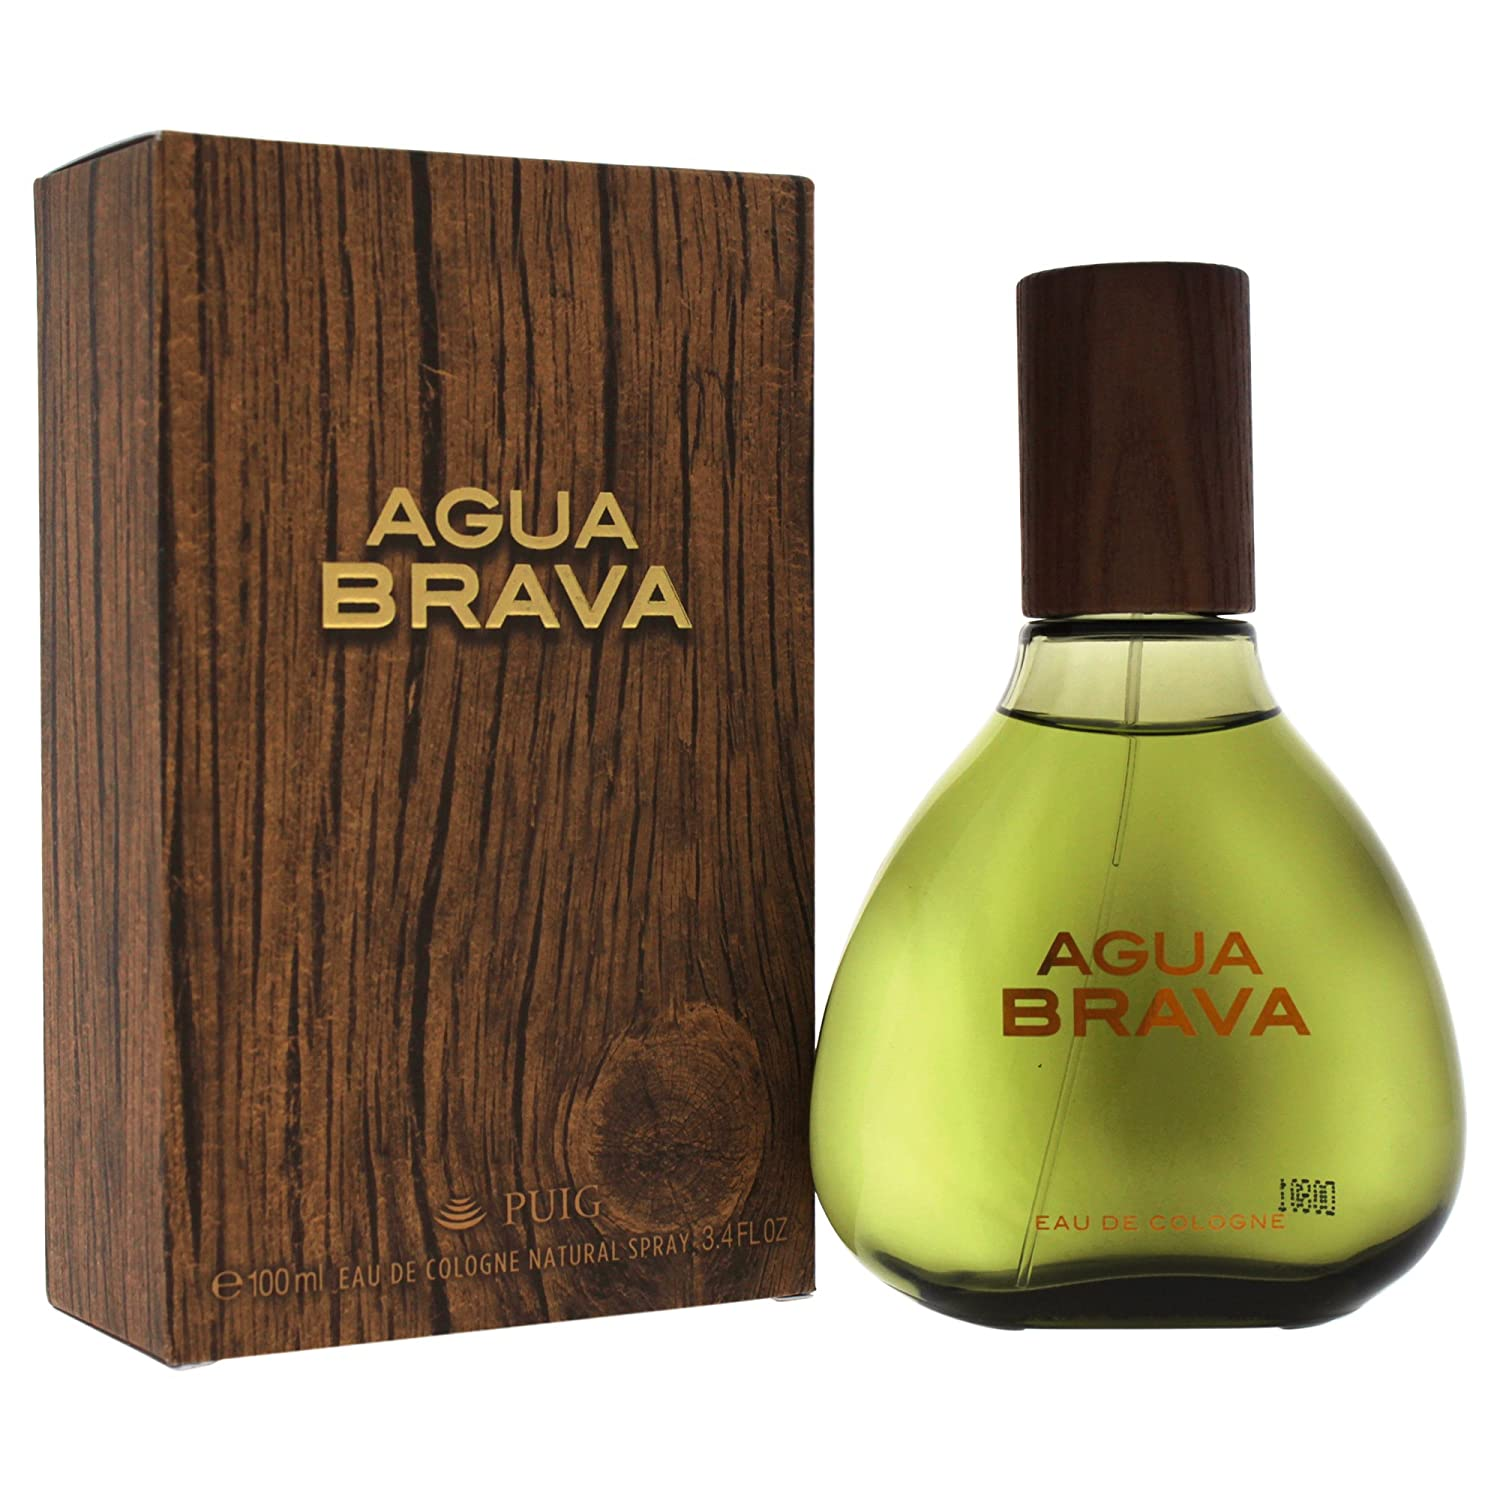 Puig Agua Brava 100 ml EDC Spray, 1er Pack (1 x 100 ml) 117007 Duft > Herren